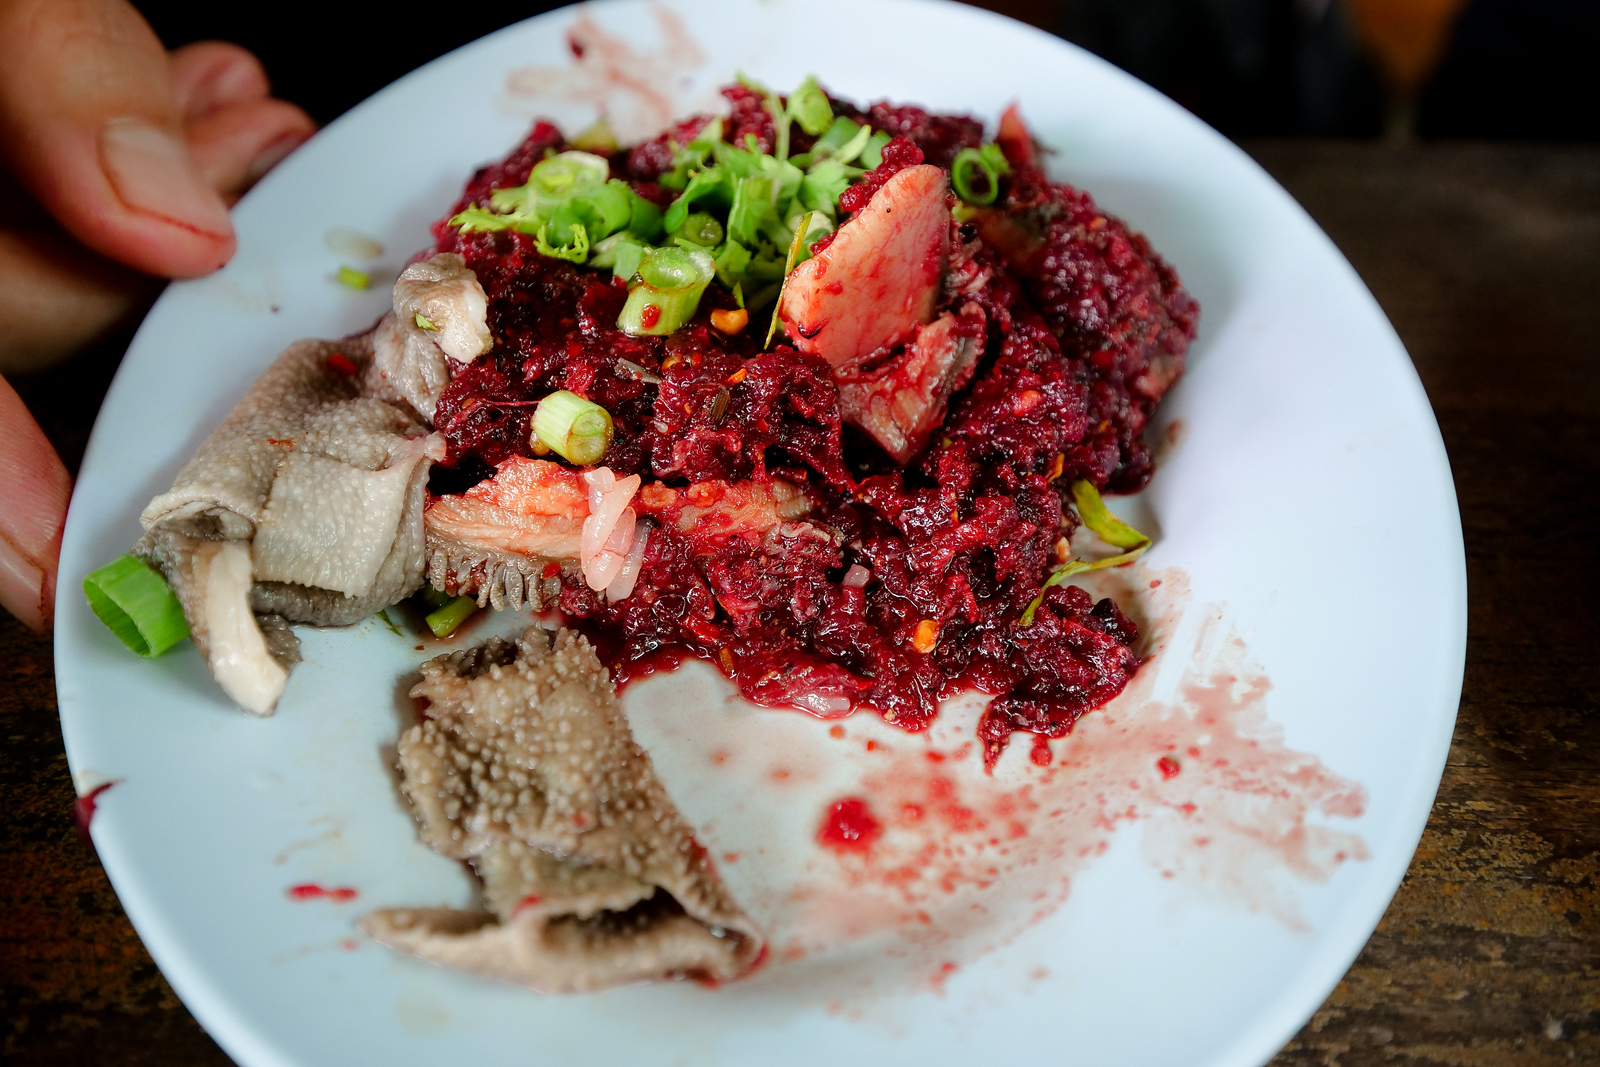 Sticky Rice and Raw Meat